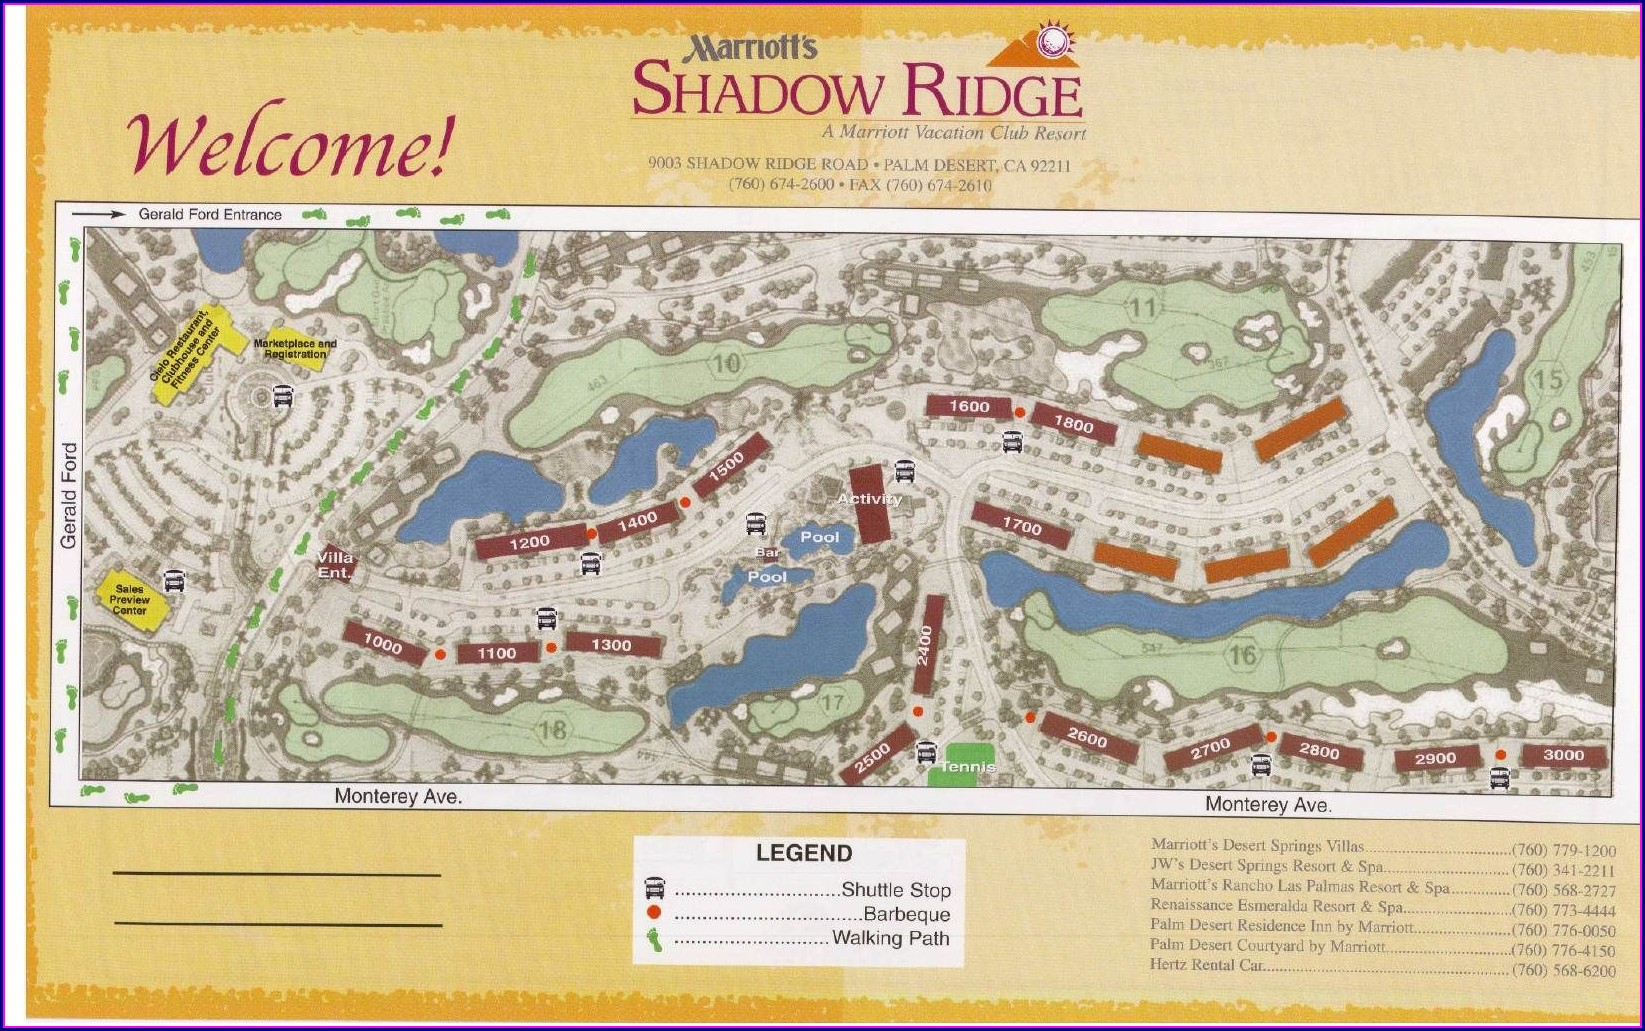 Palm Desert Marriott Shadow Ridge Resort Map